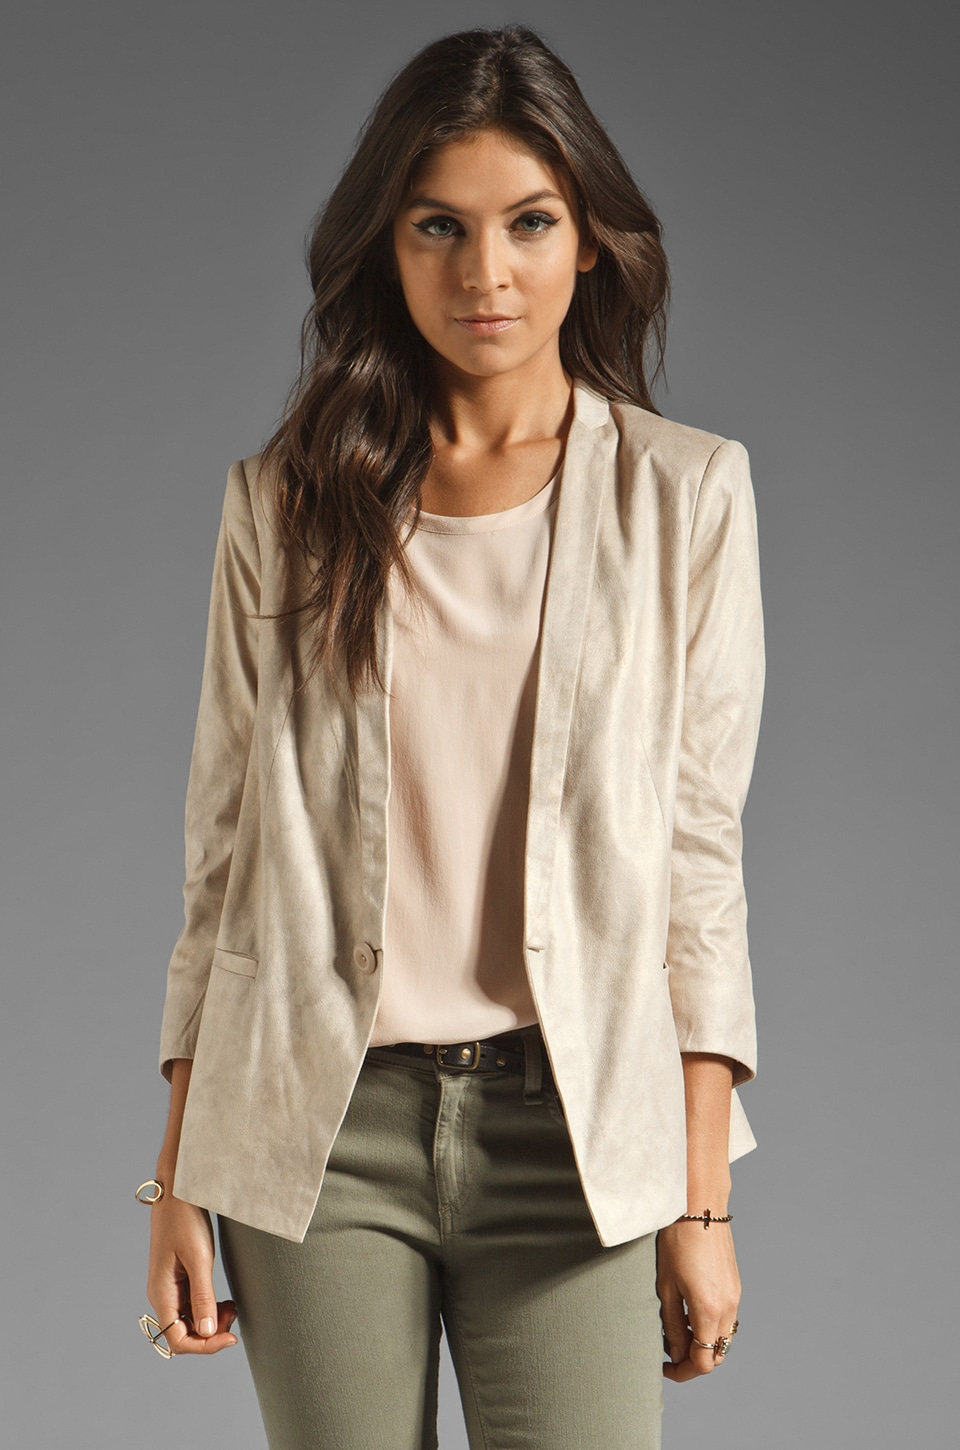 Capulet Notch Collar Faux Leather Blazer in Creme